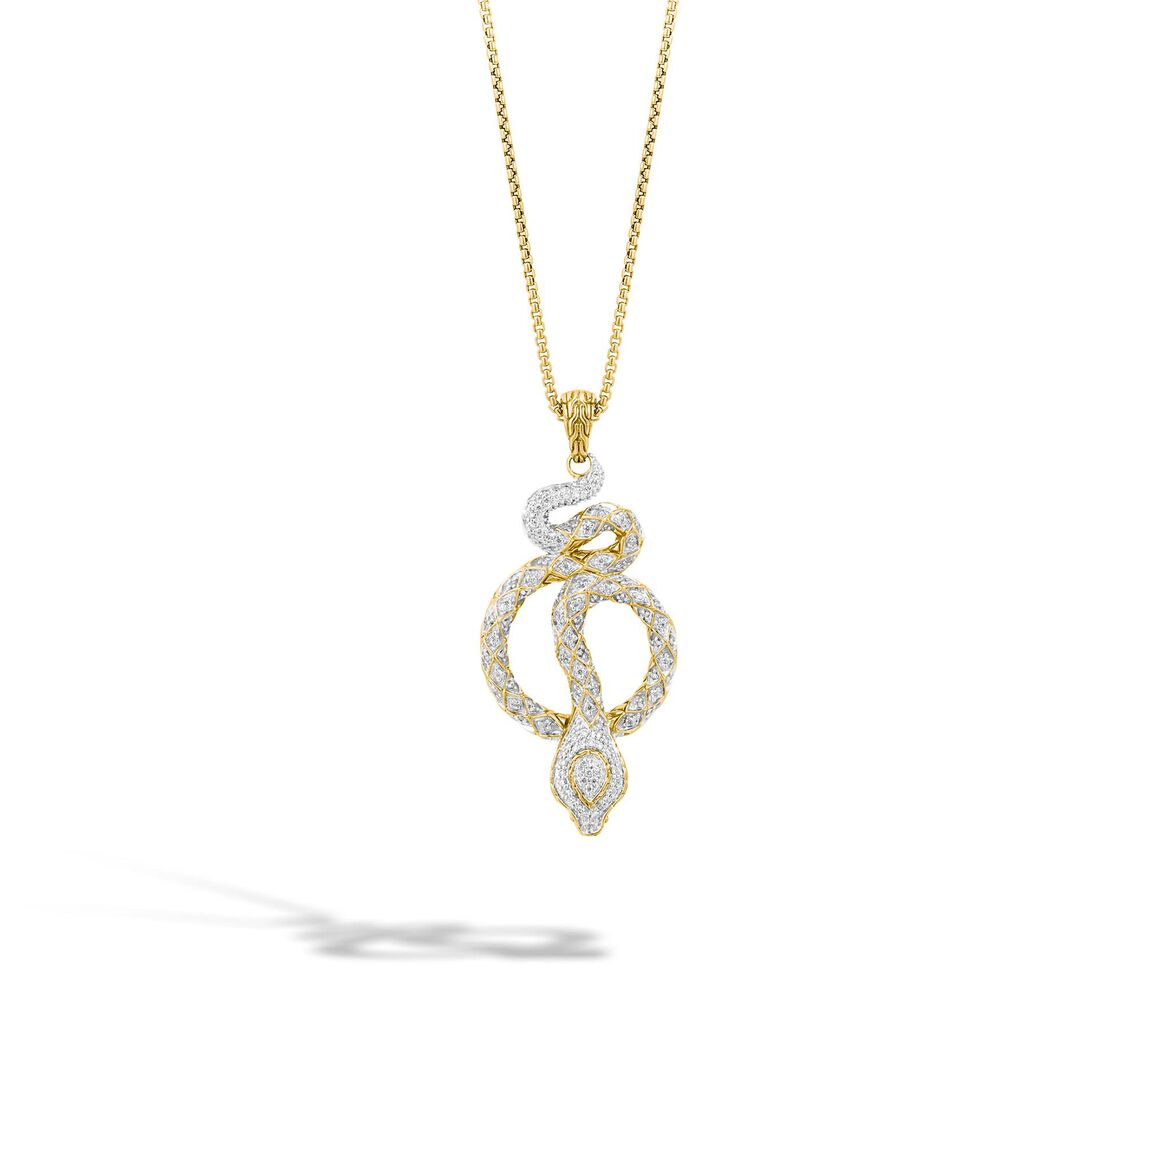 Legends Cobra Pendant Necklace in 18K Gold with Diamonds